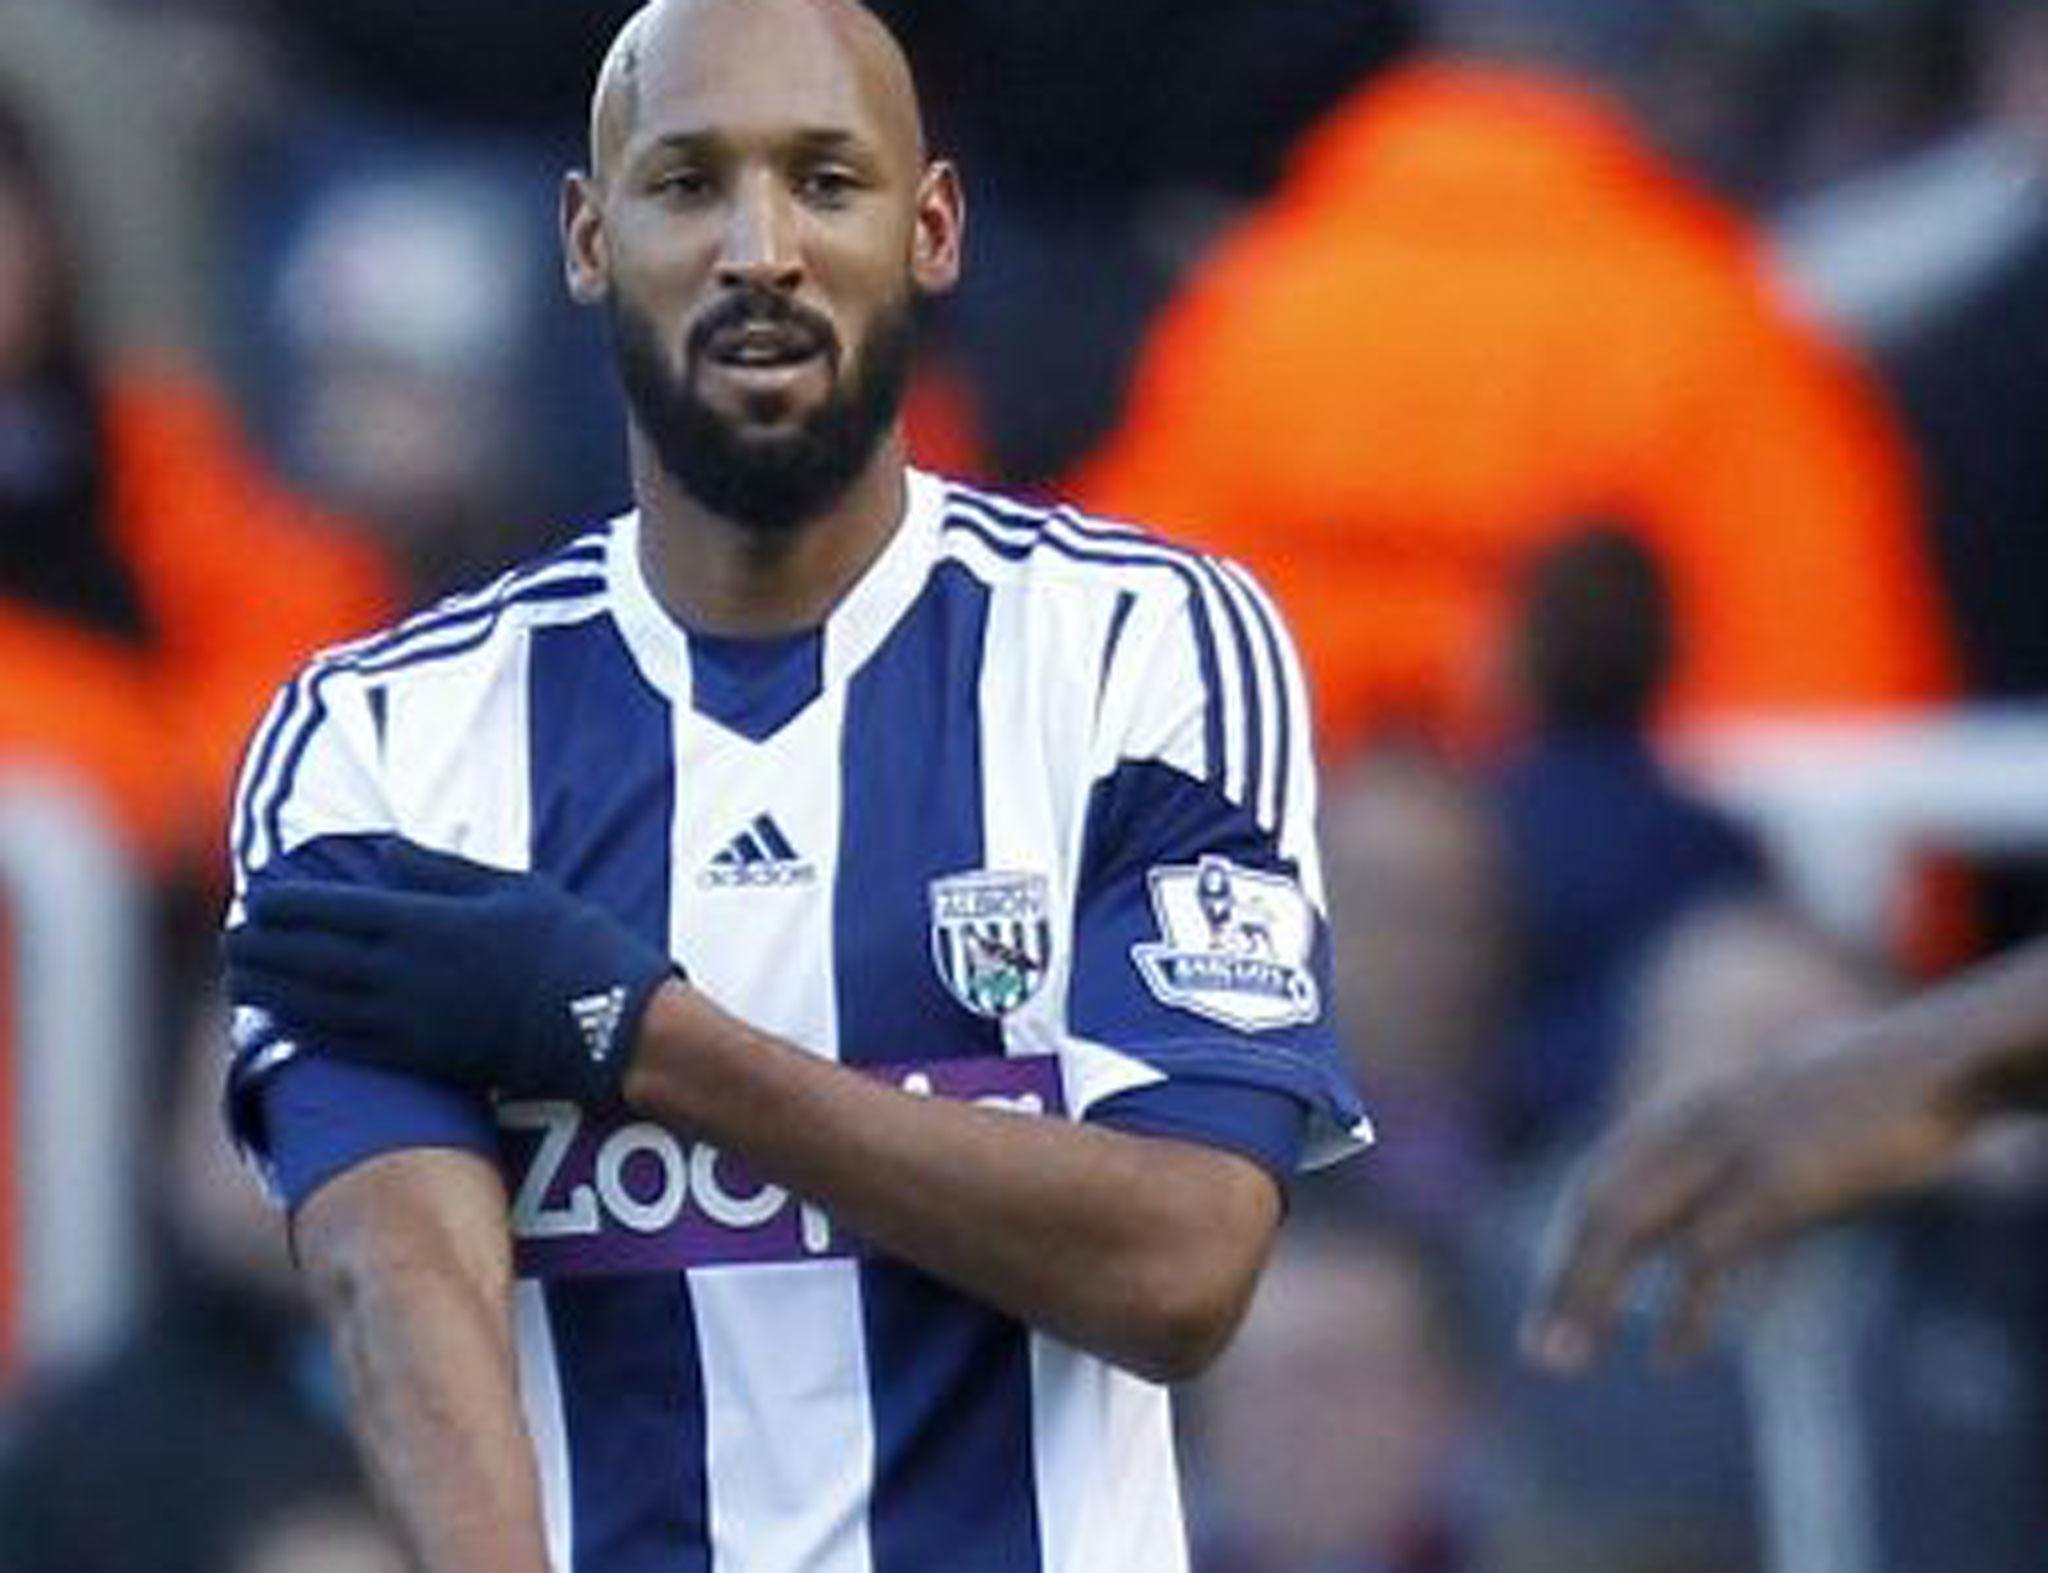 nikolas anelka, quenelle, zoopla, sponsorship vs advertising